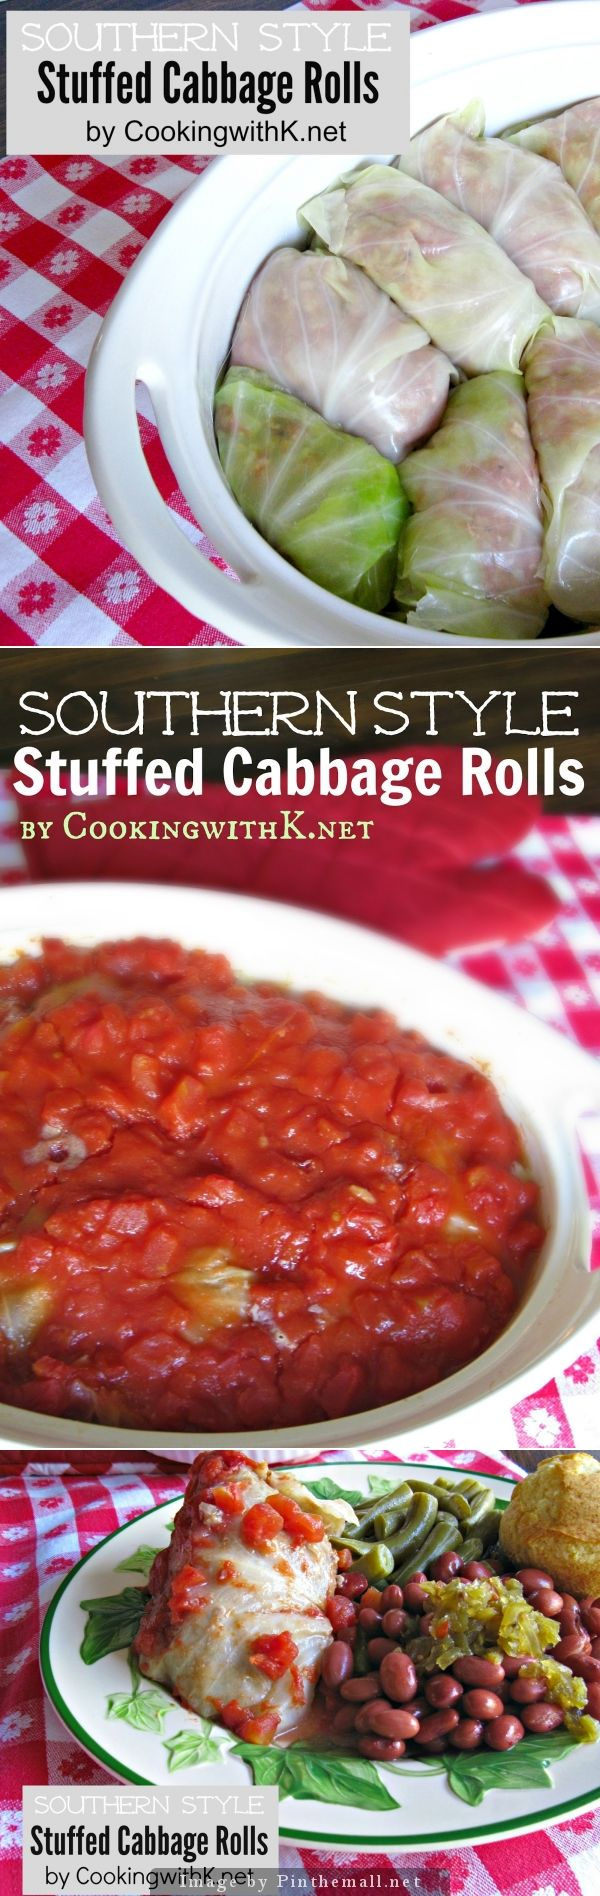 Southern Style Cabbage Rolls {Granny\'s Recipe} |  An old fashioned recipe made with hamburger, rice,  onions, and covered in a ketchup diced tomato sauce. | CookingwithK.net